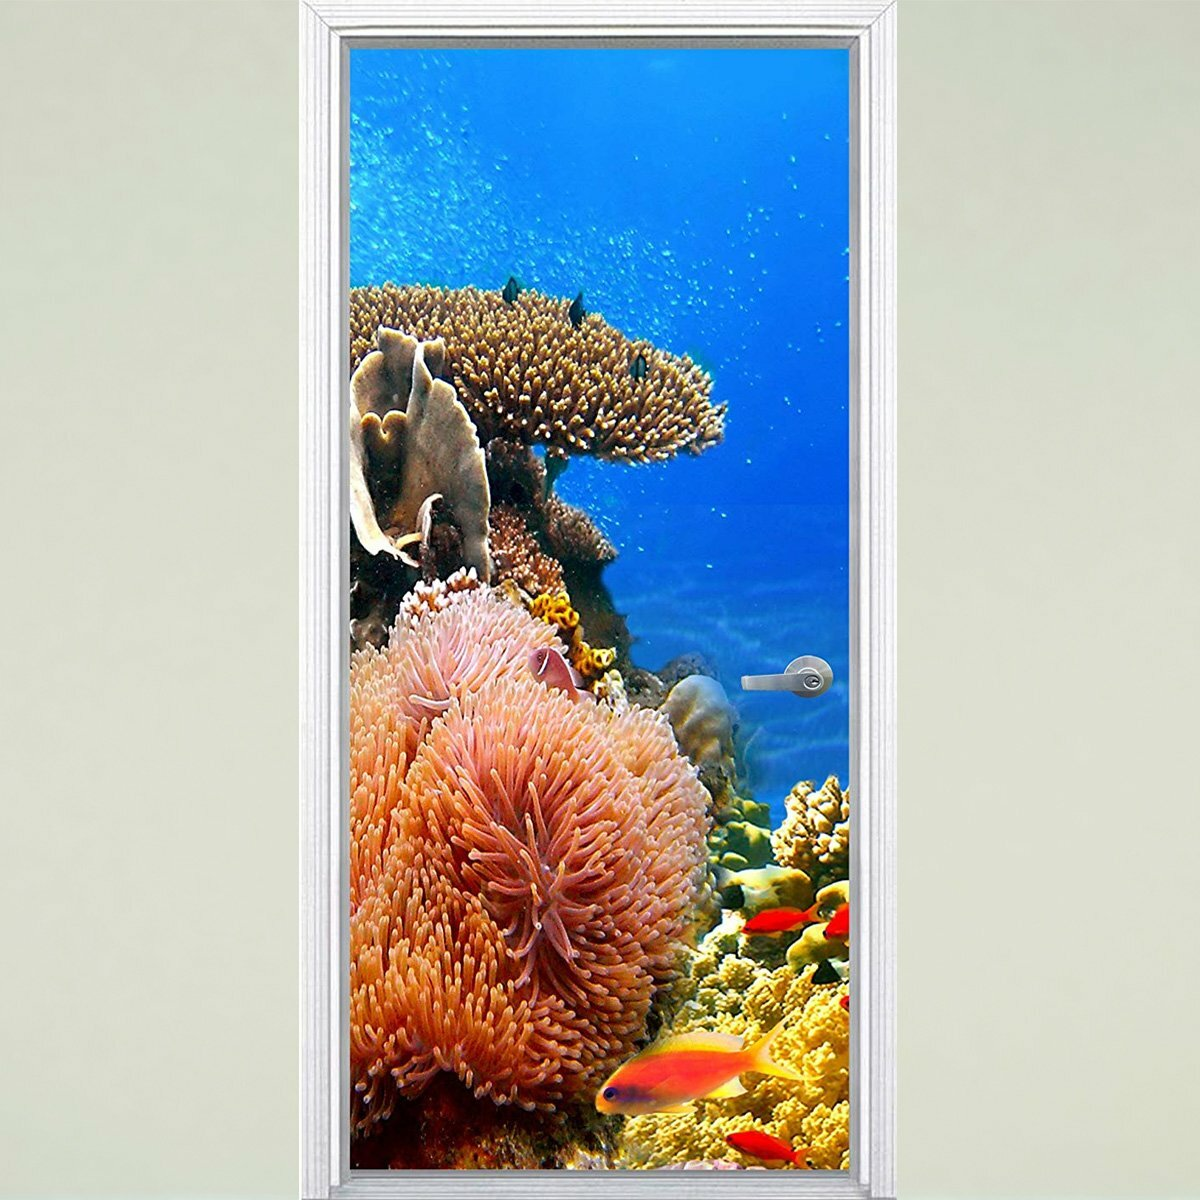 Wall Decals Large Coral Reef Branch Vinyl Art Interior Decor Etsy